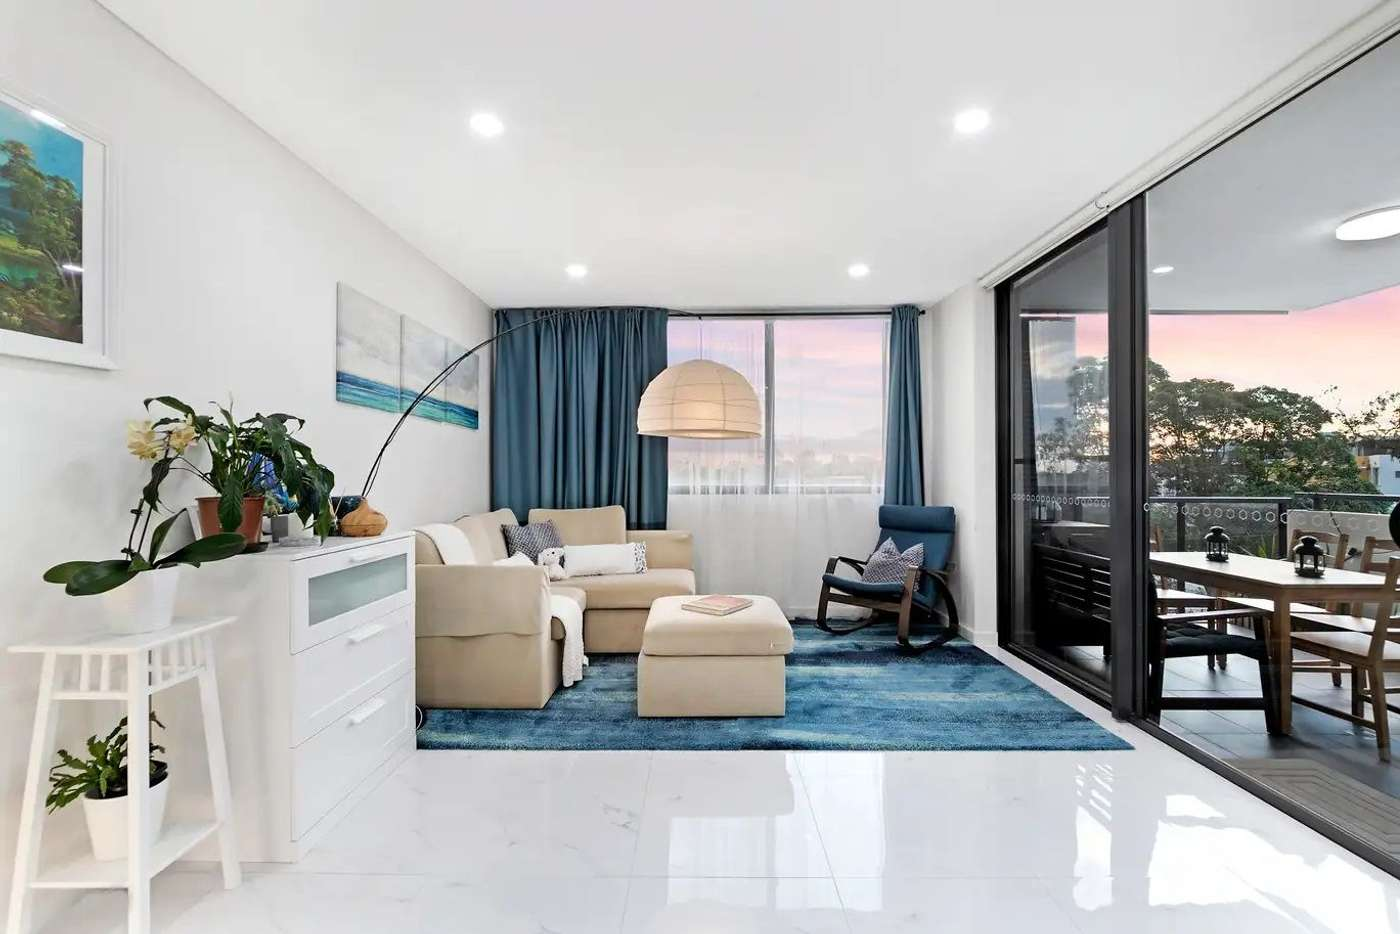 Main view of Homely apartment listing, 310/442-446 Peats Ferry Road, Asquith NSW 2077